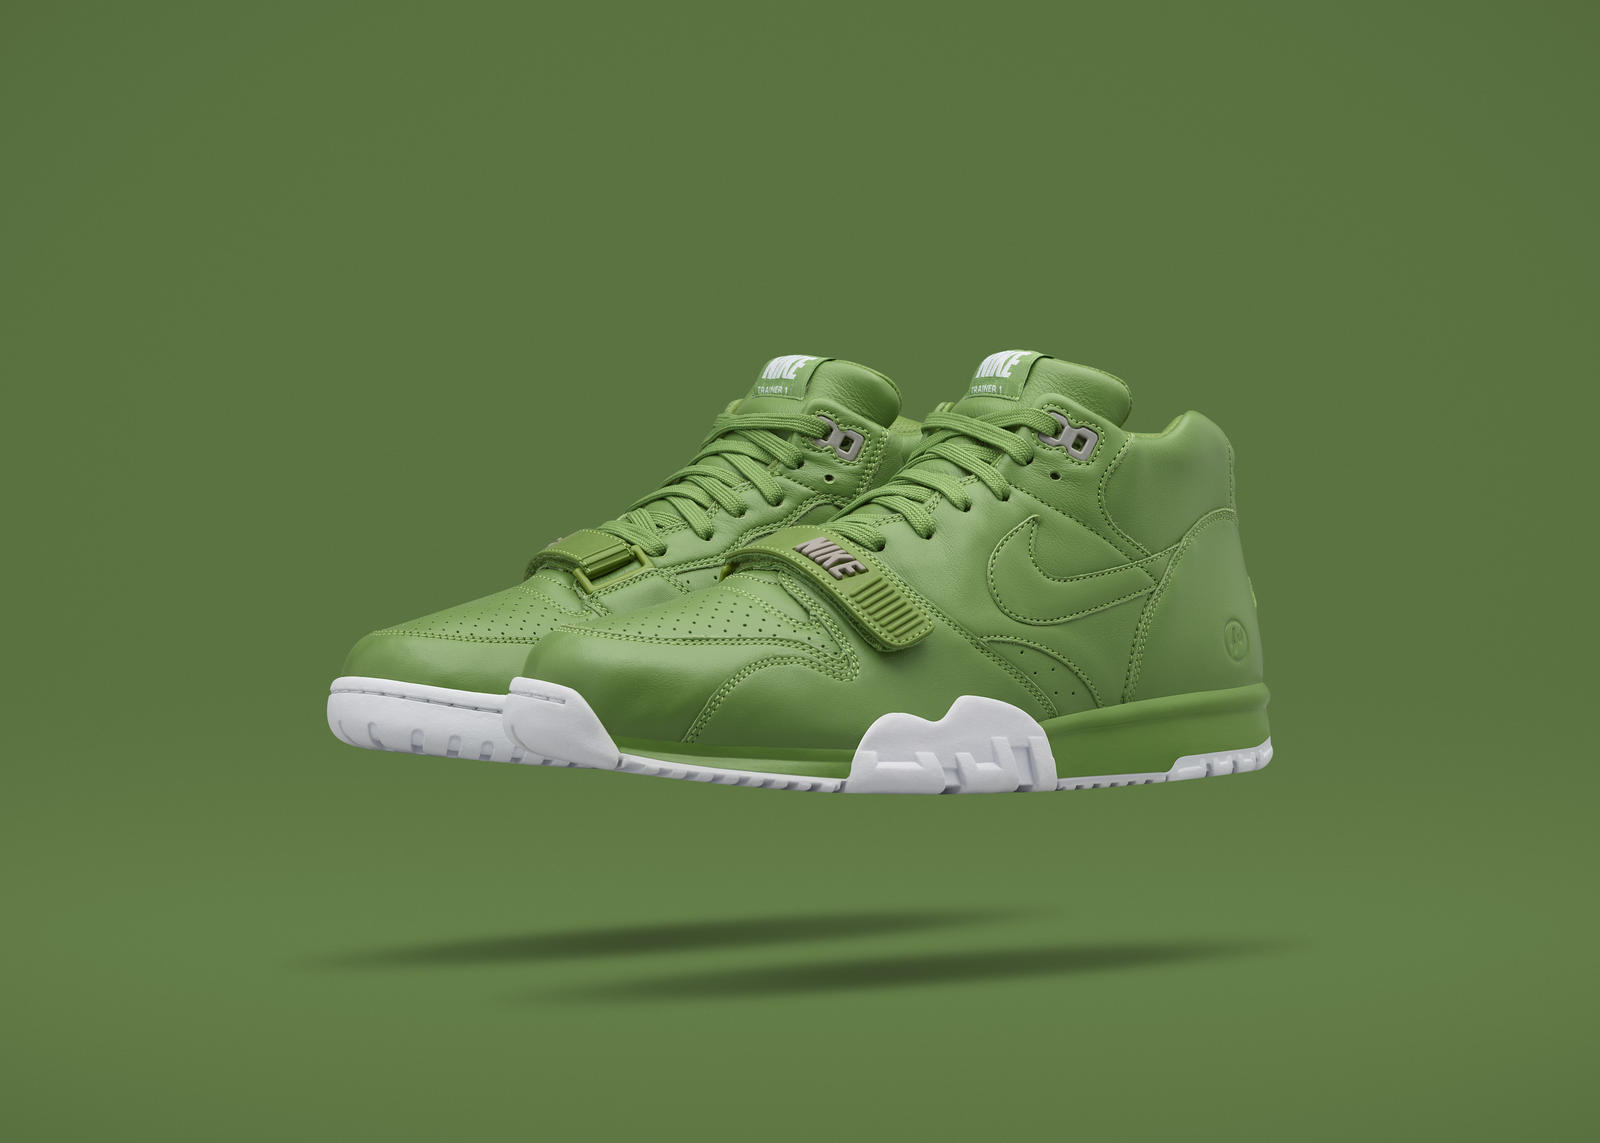 Nikecourt air trainer 1 x fragment 7 rectangle 1600